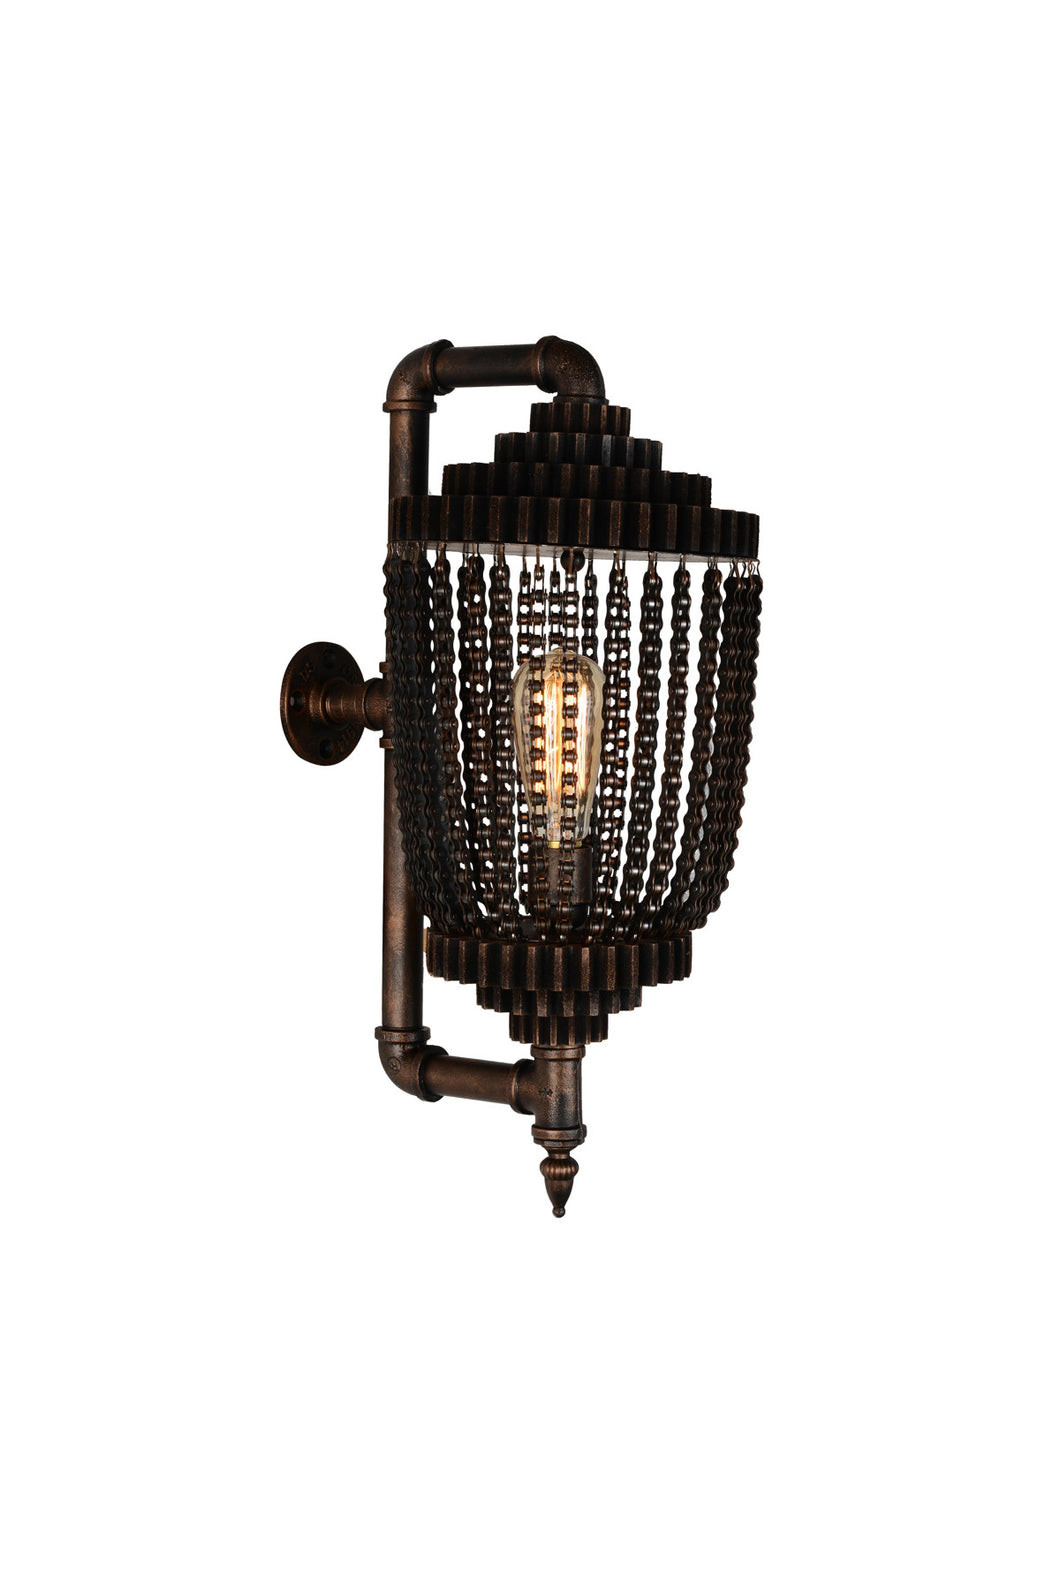 1 Light Wall Sconce with Speckled copper finish